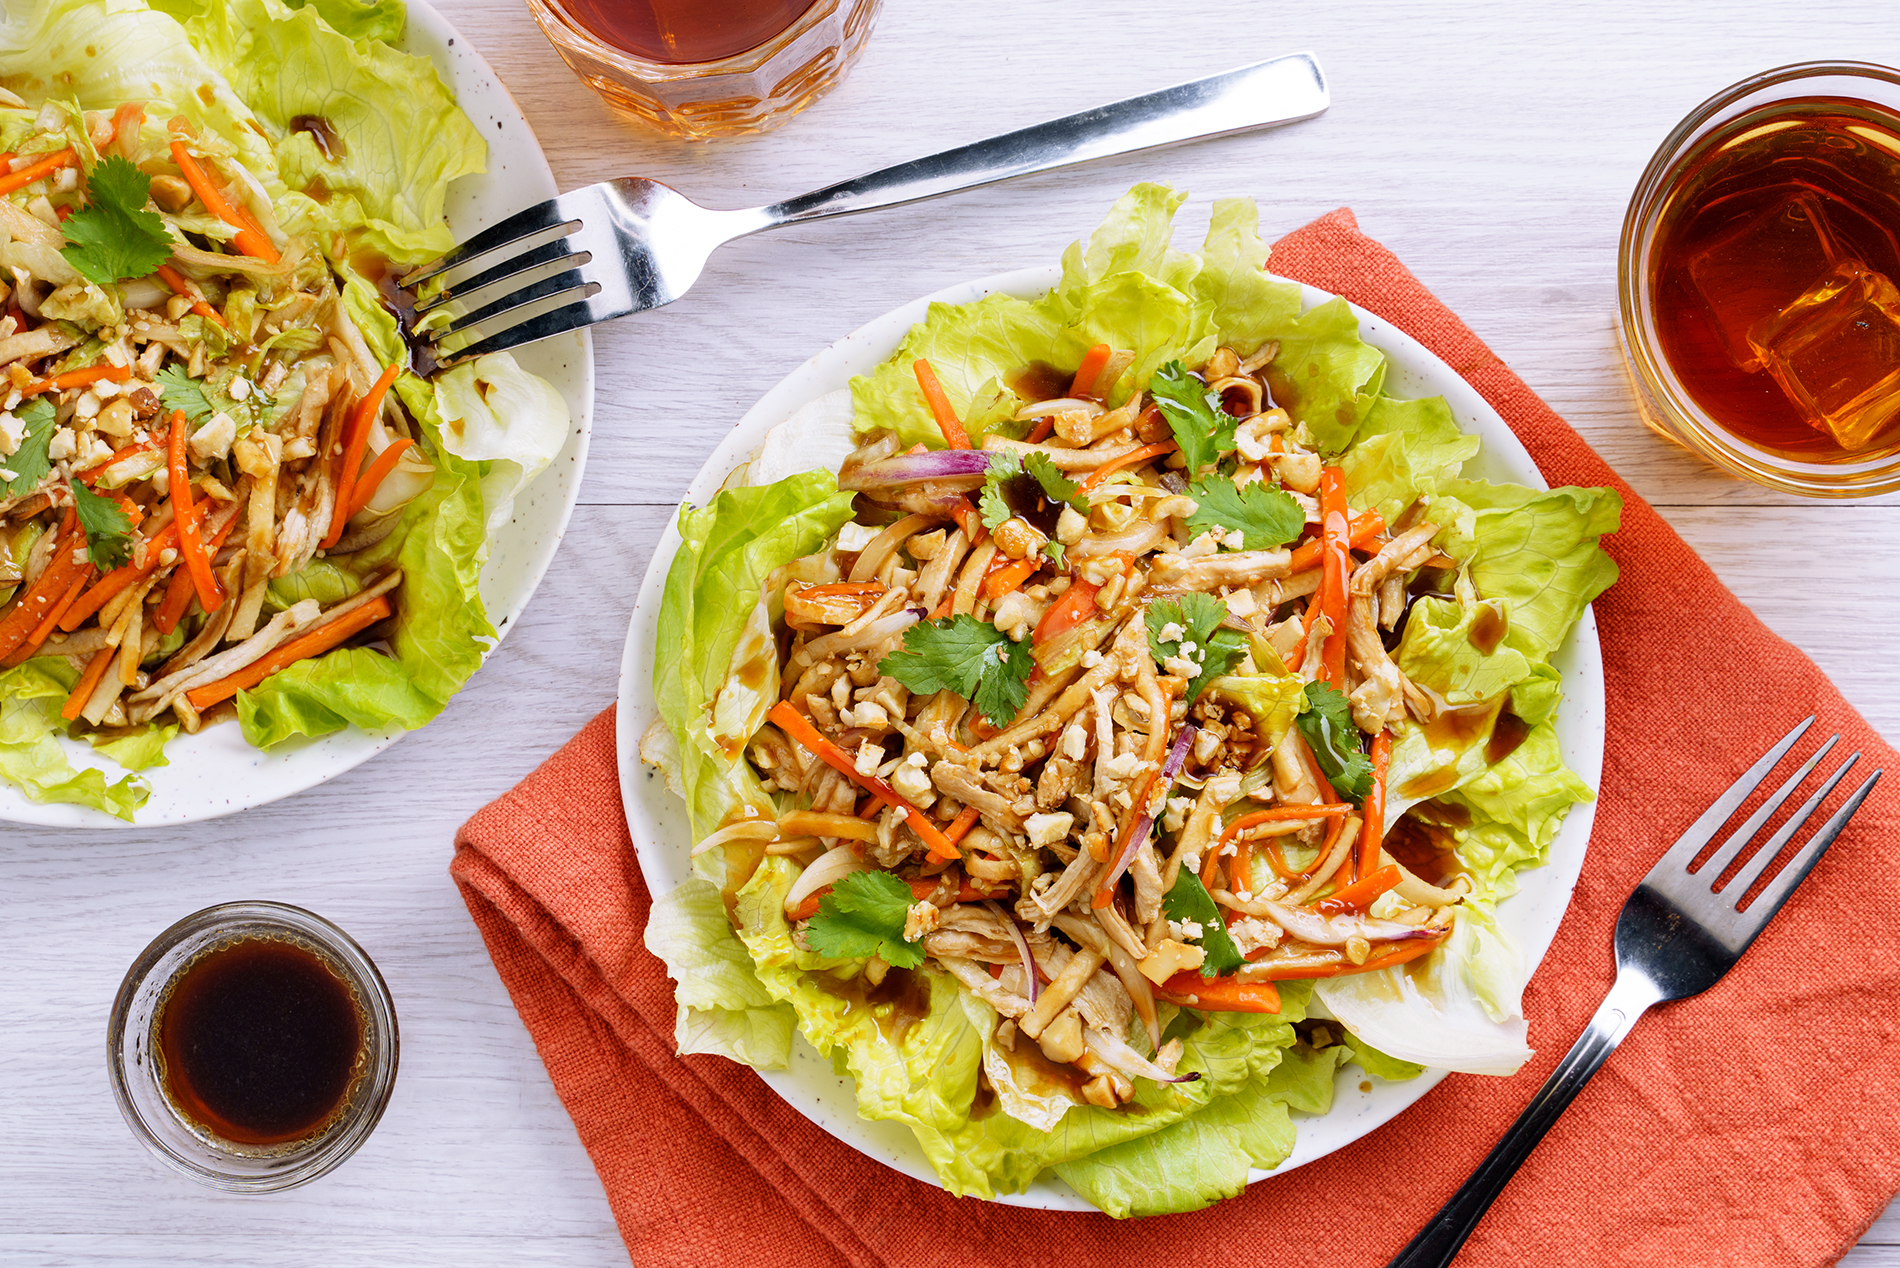 Oyster Asian-Style Salad (Chicken and Lettuce) from the Philippines